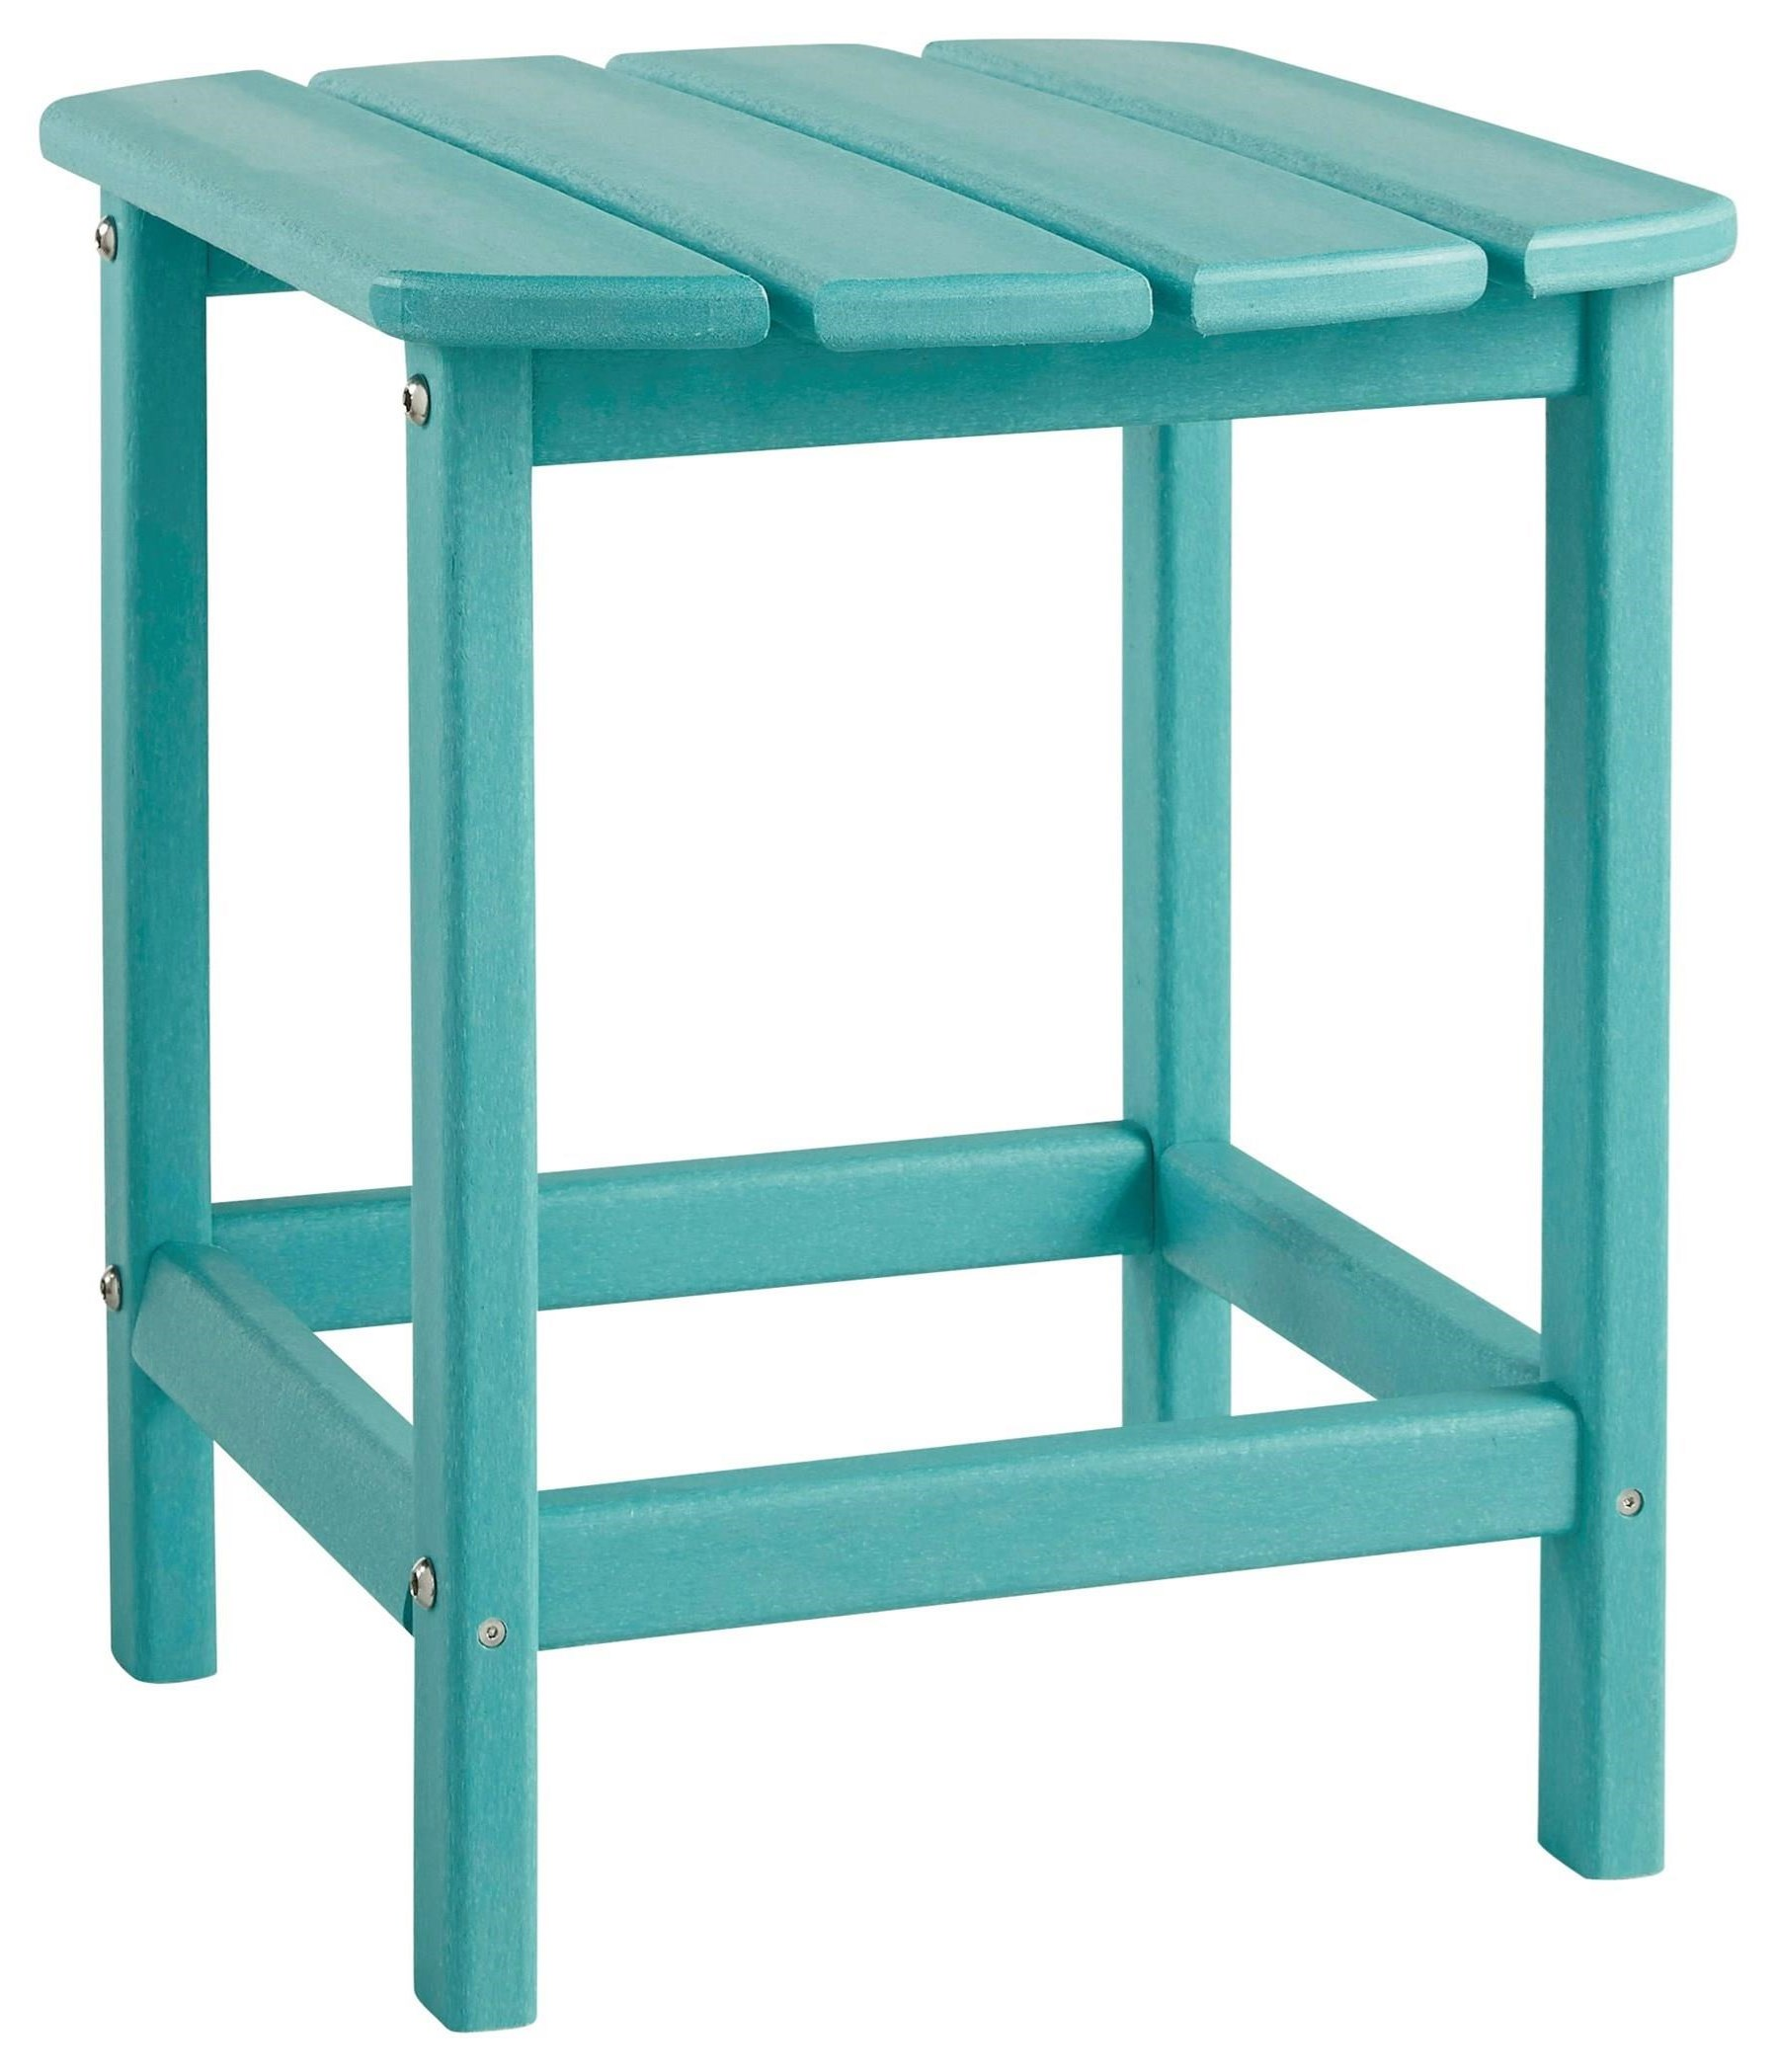 Sundown Treasure Blue Sundown Treasure Outdoor End Table by Ashley at Morris Home